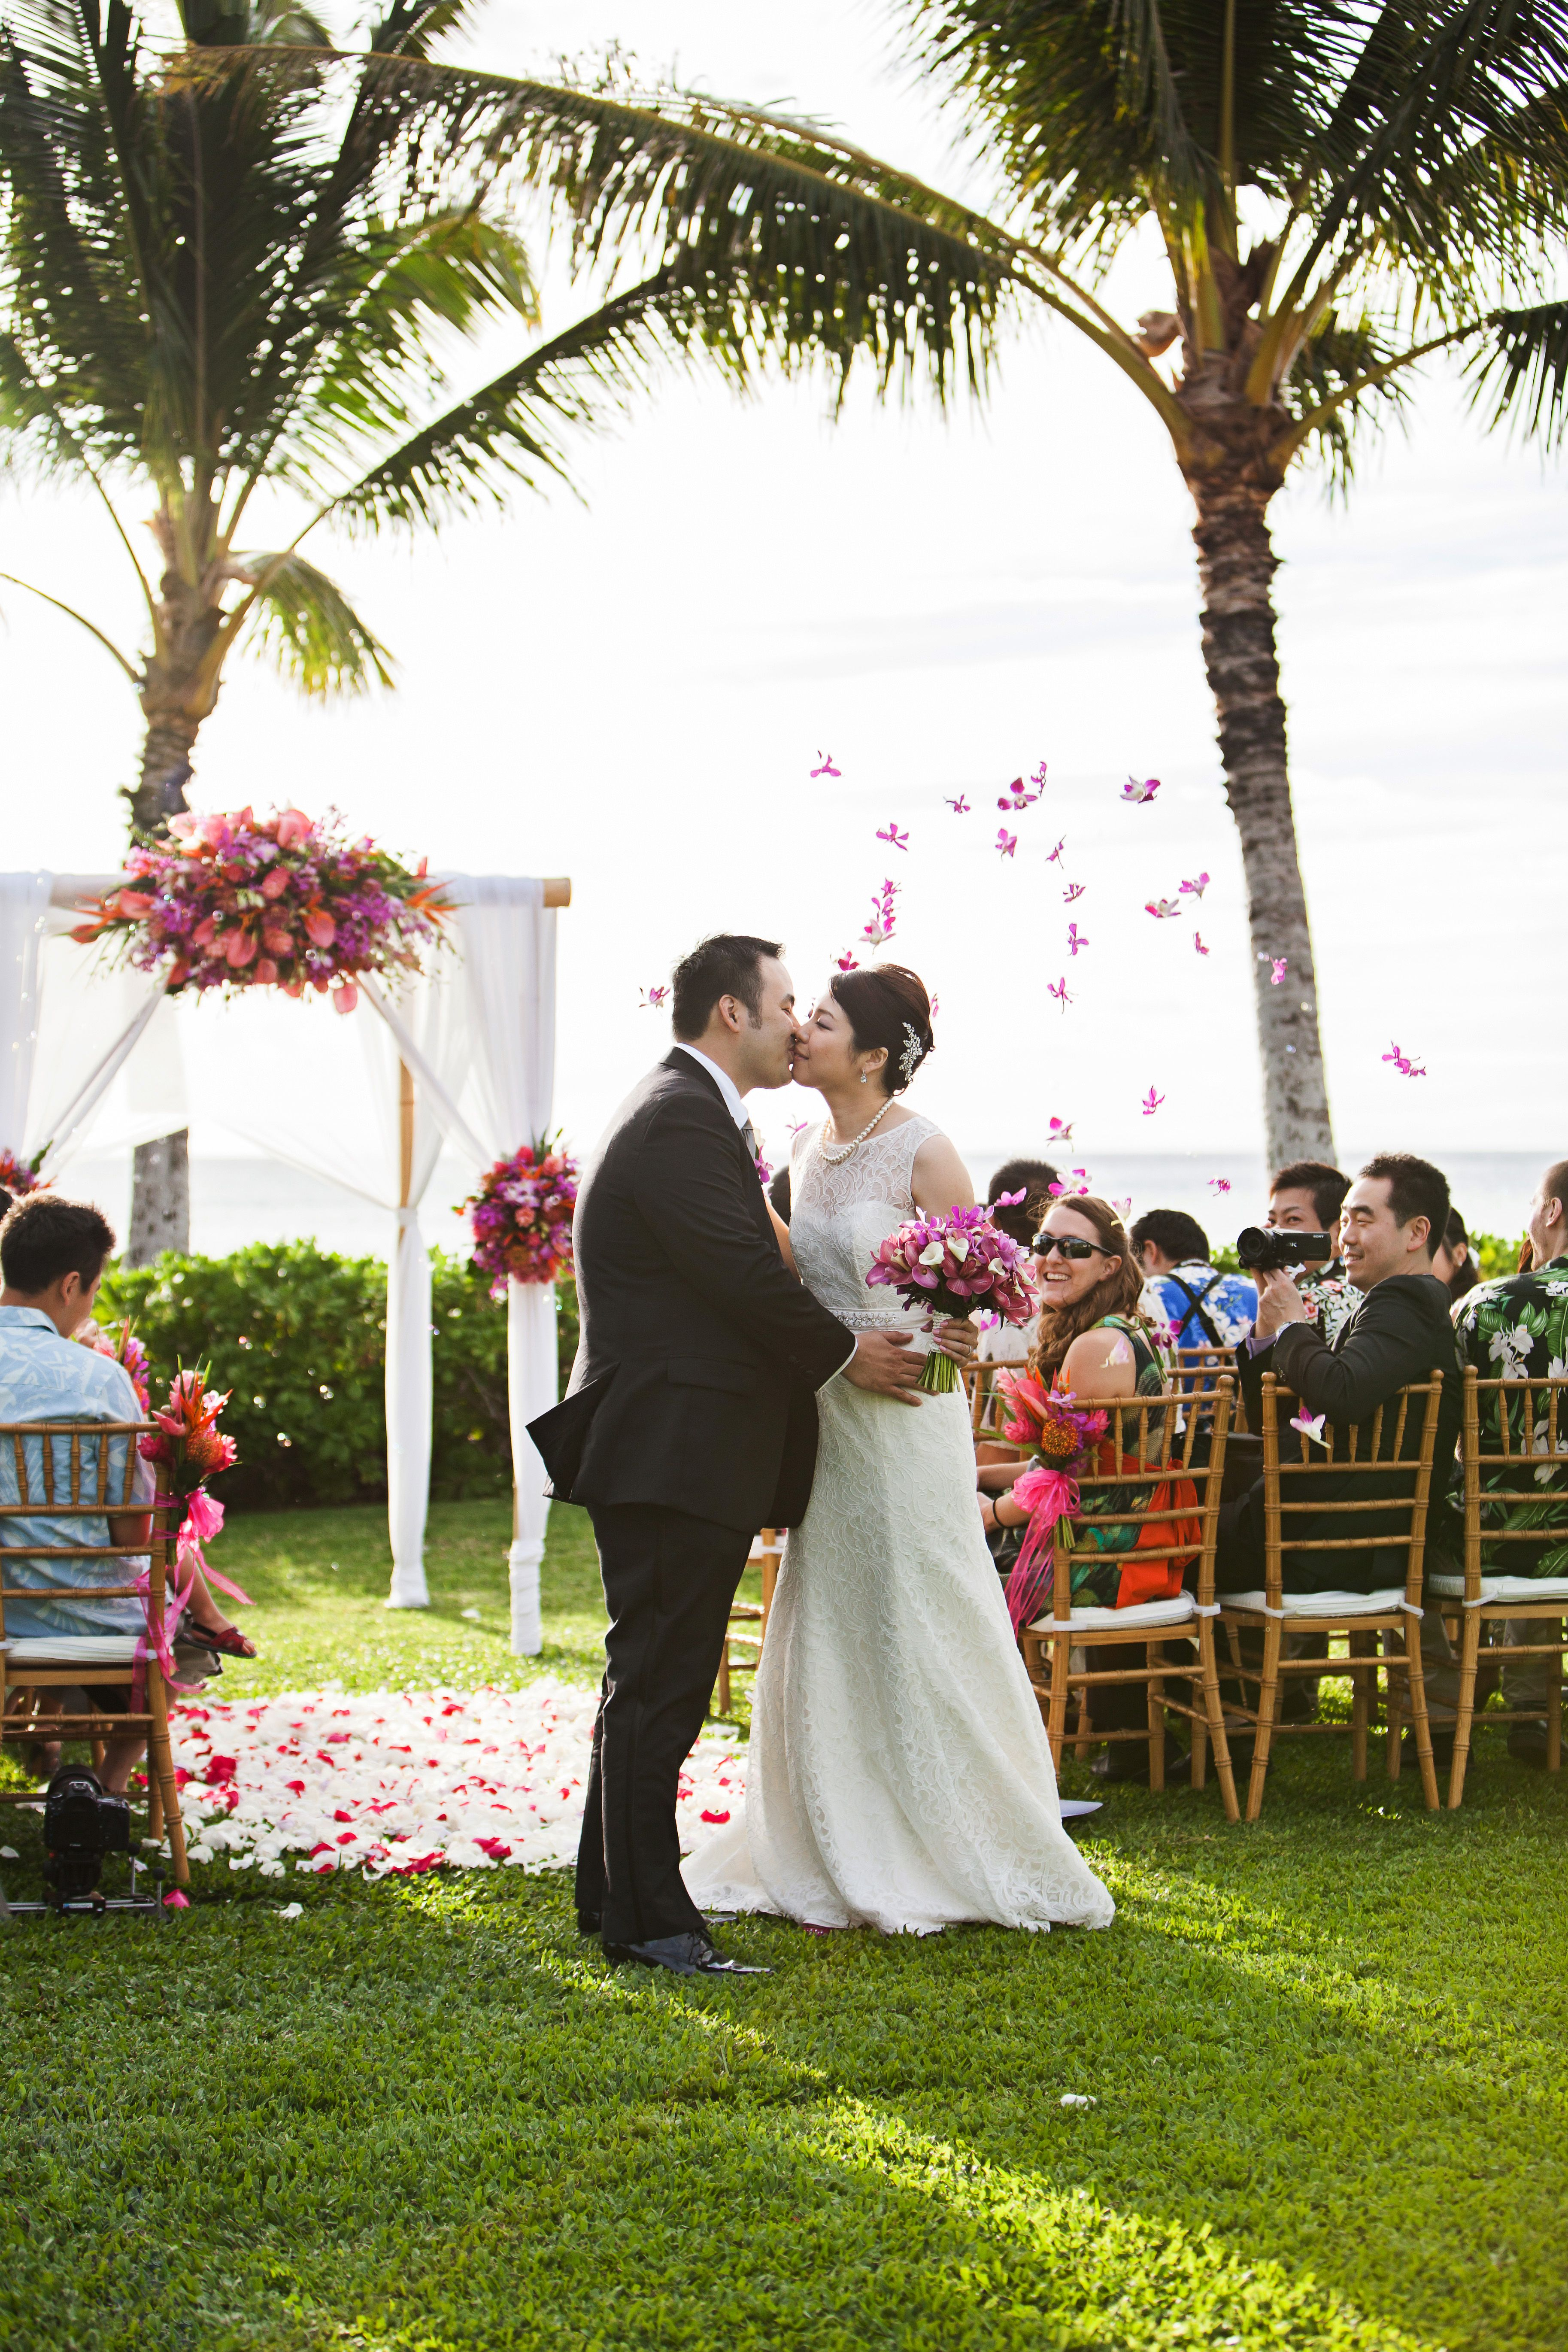 Our Couple S Flower Shower At Paradise Cove Contact Hawaii Weddings By Tori Rogers Www Hawaiianweddings Ne Hawaiian Wedding Hawaii Wedding Dream Beach Wedding